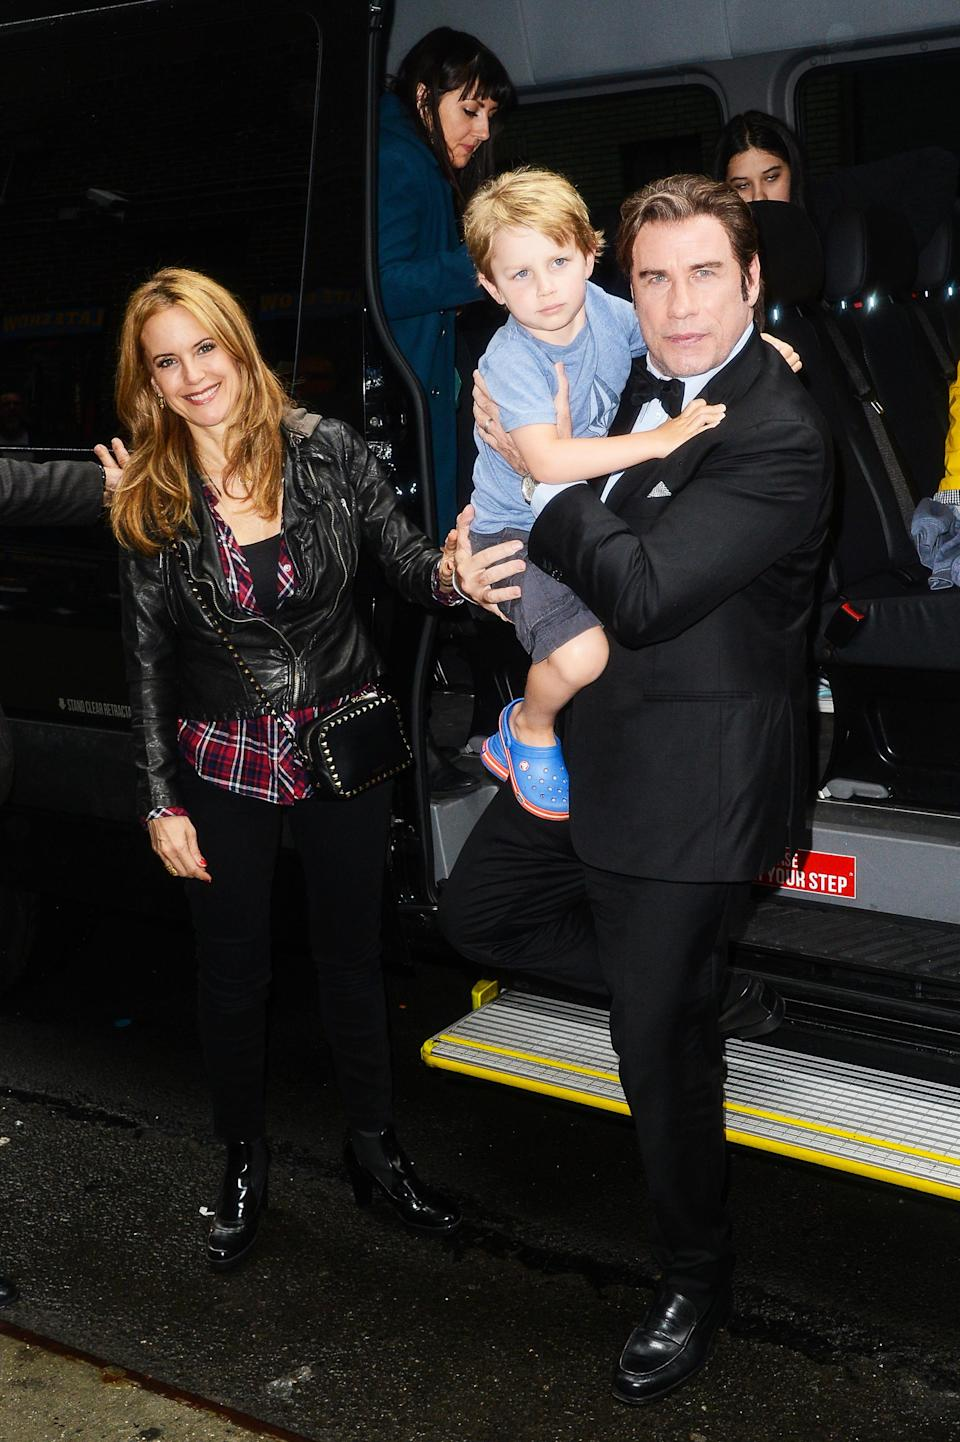 """<p>After two hard years following the sudden death of their 16-year-old son, Jett, Preston and John Travolta became parents again when she was 48. """"It's pretty amazing having a child at this age,"""" Preston told <em><a href=""""http://www.health.com/health/article/0,,20513855,00.html"""" rel=""""nofollow noopener"""" target=""""_blank"""" data-ylk=""""slk:Health"""" class=""""link rapid-noclick-resp"""">Health</a></em> in March 2013. """"We had been trying for quite a few years, and then of course there was a time when we weren't, and then we started trying again. When I found out I was pregnant, I was floored. I'd snuck out of bed and then came back and woke Johnny up in bed. We both started crying. It was wonderful."""" (Photo: Ray Tamarra/Getty Images) </p>"""